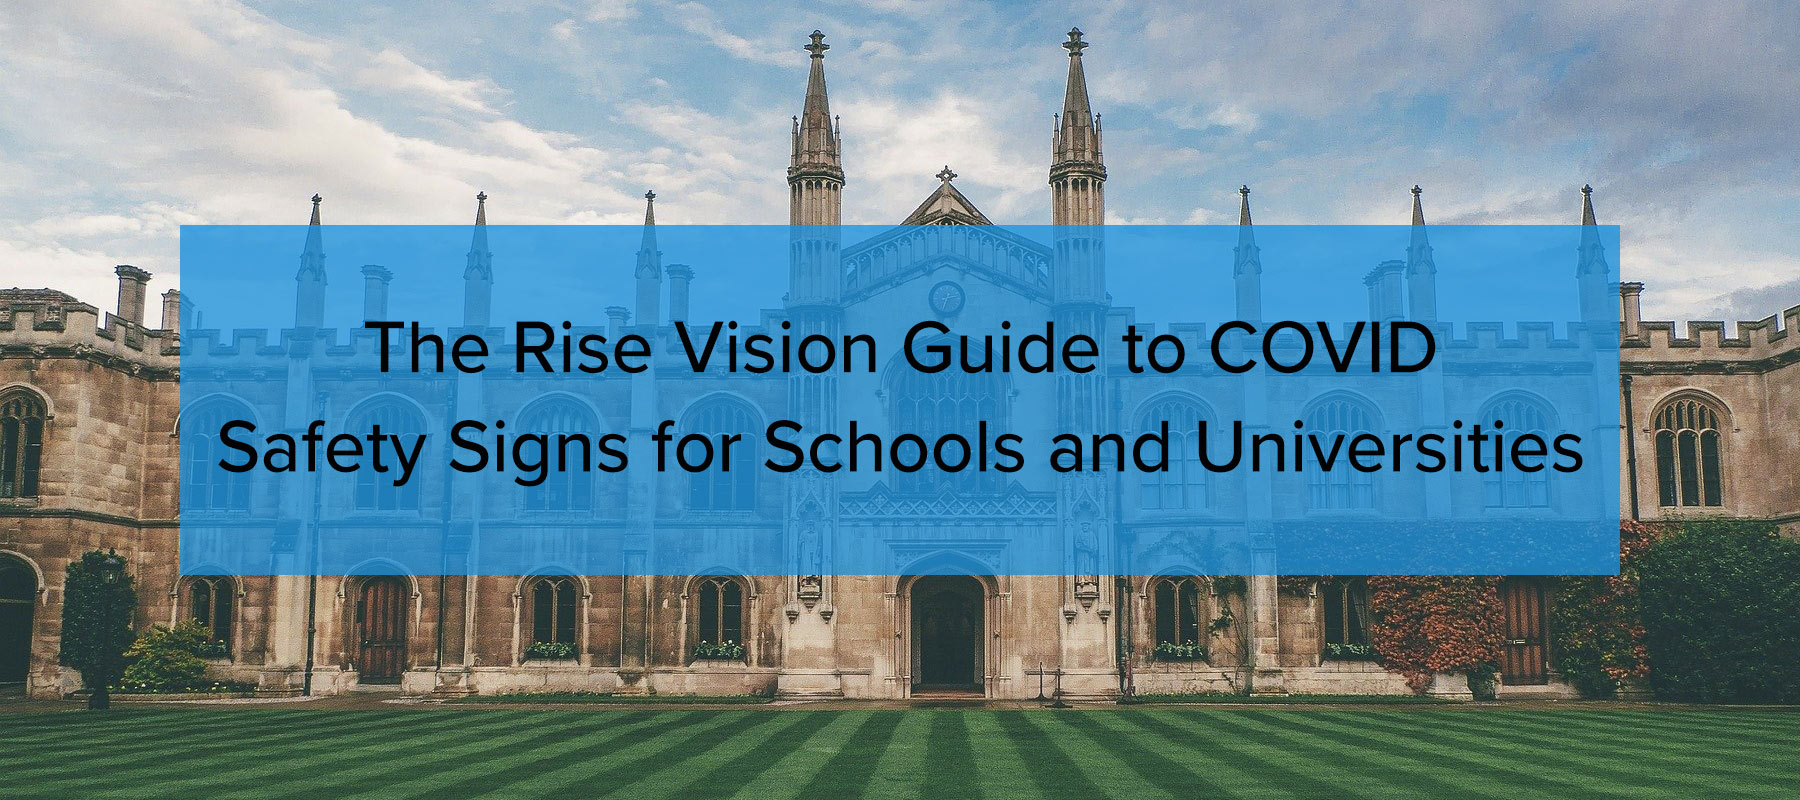 Guide to COVID Safety Signs for Schools and Universities